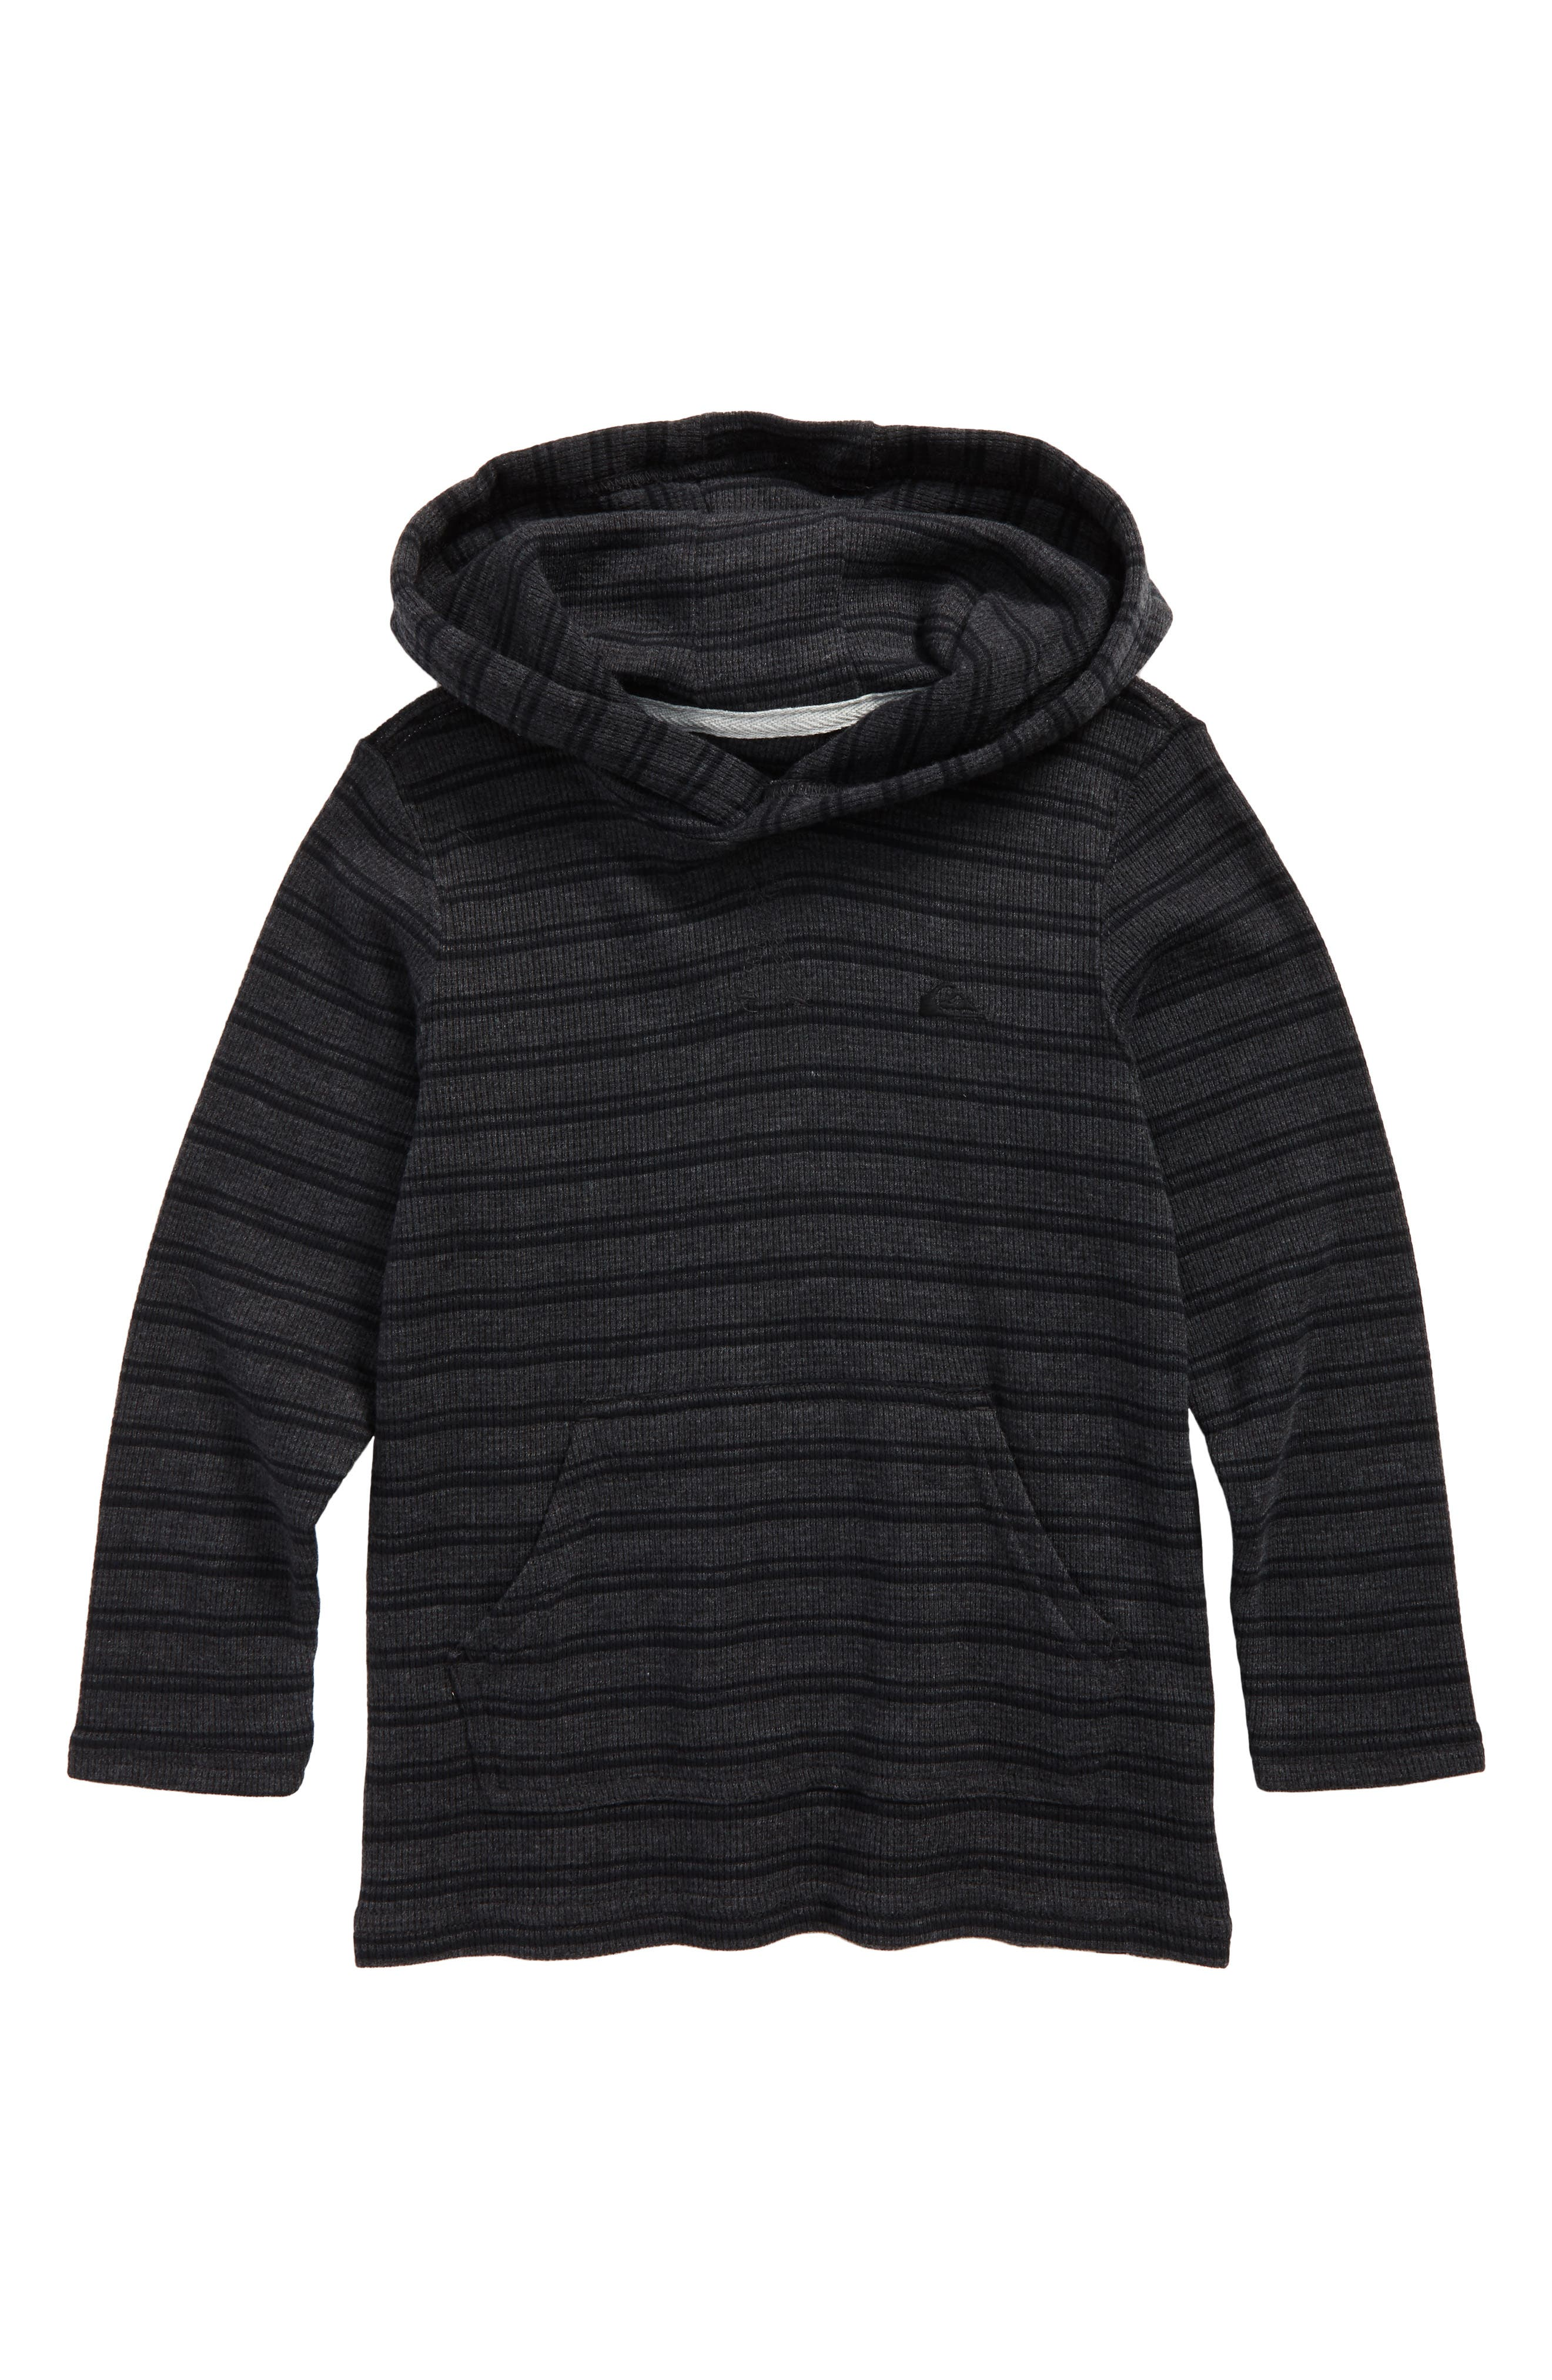 Quiksilver Ocean Surface Thermal Hoodie (Toddler Boys & Little Boys)